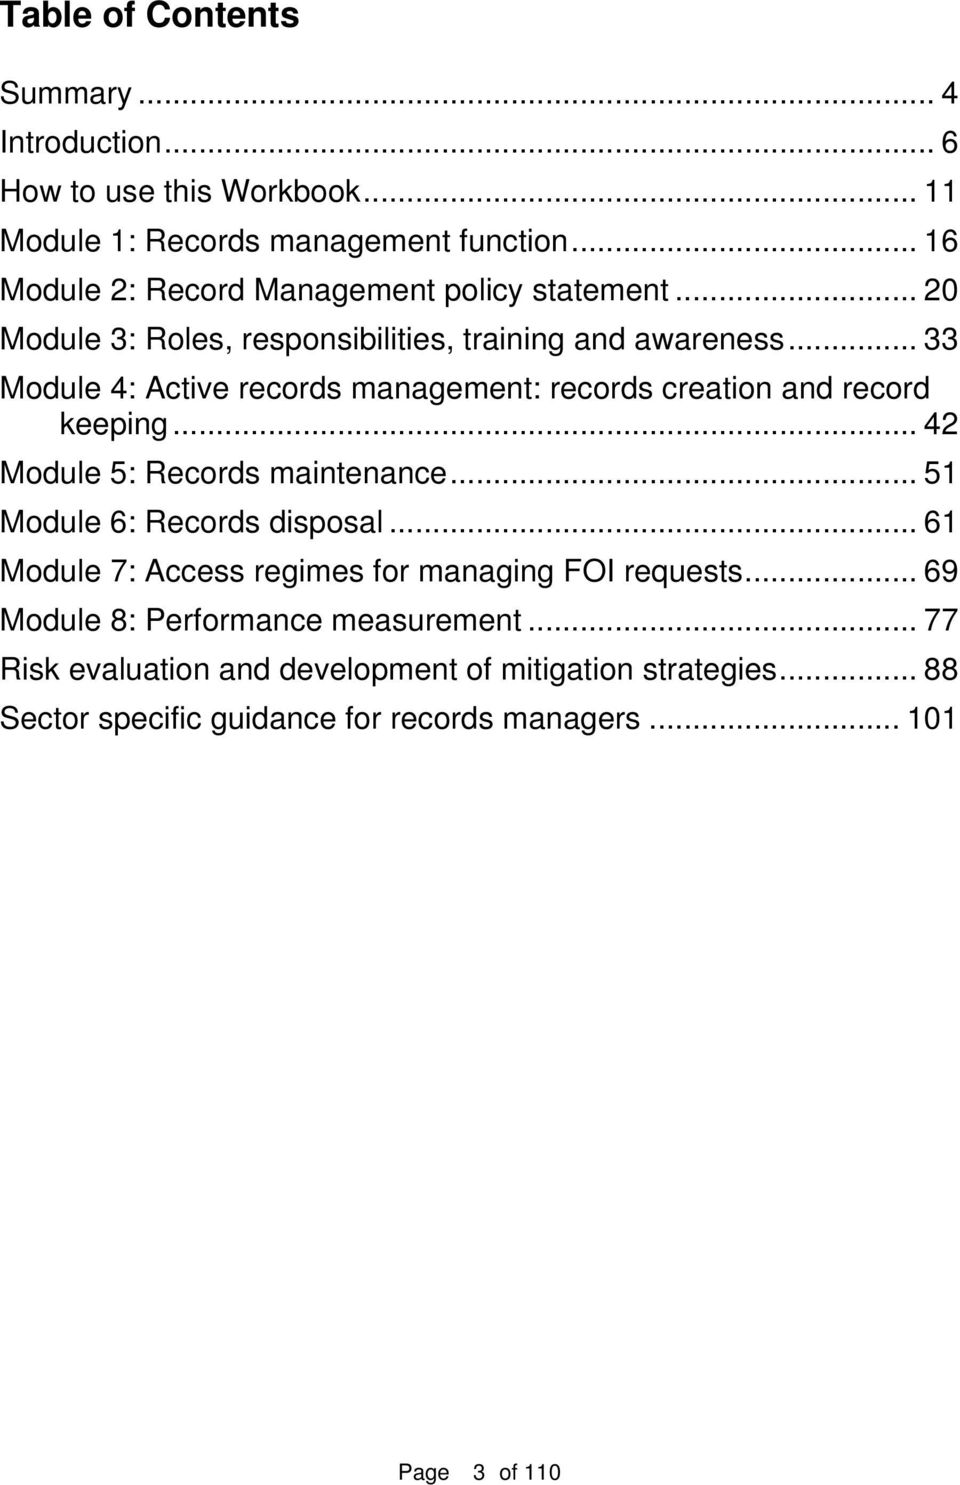 .. 33 Module 4: Active records management: records creation and record keeping... 42 Module 5: Records maintenance... 51 Module 6: Records disposal.